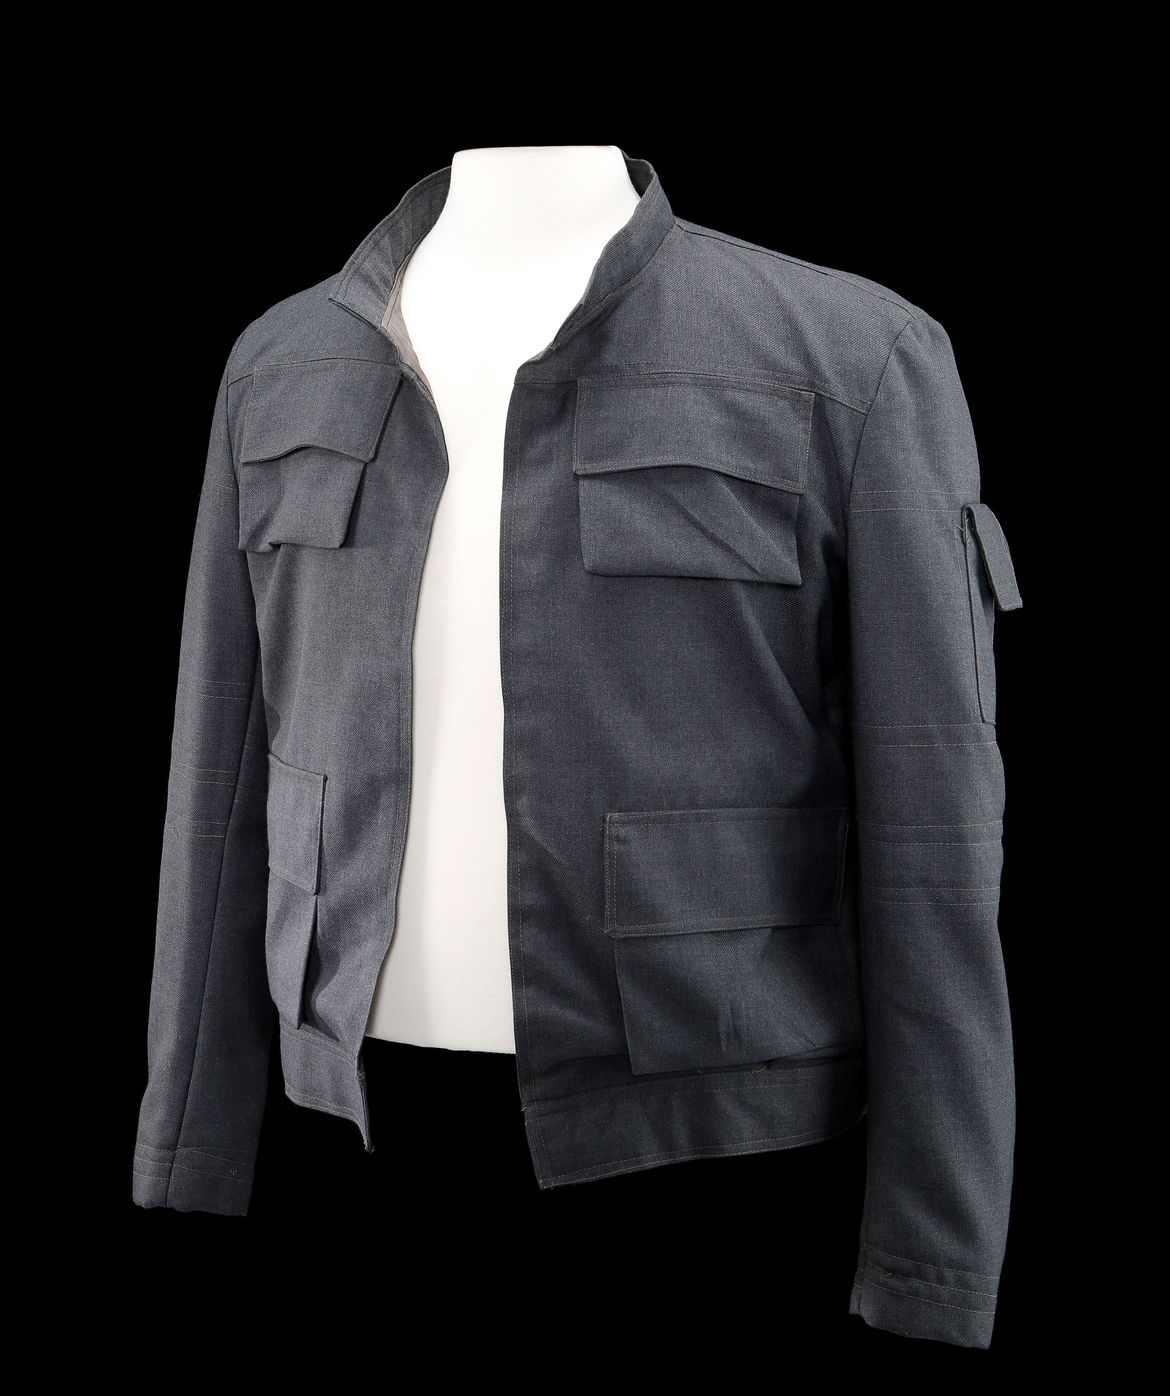 92116_Han Solo Harrison Ford Jacket_6